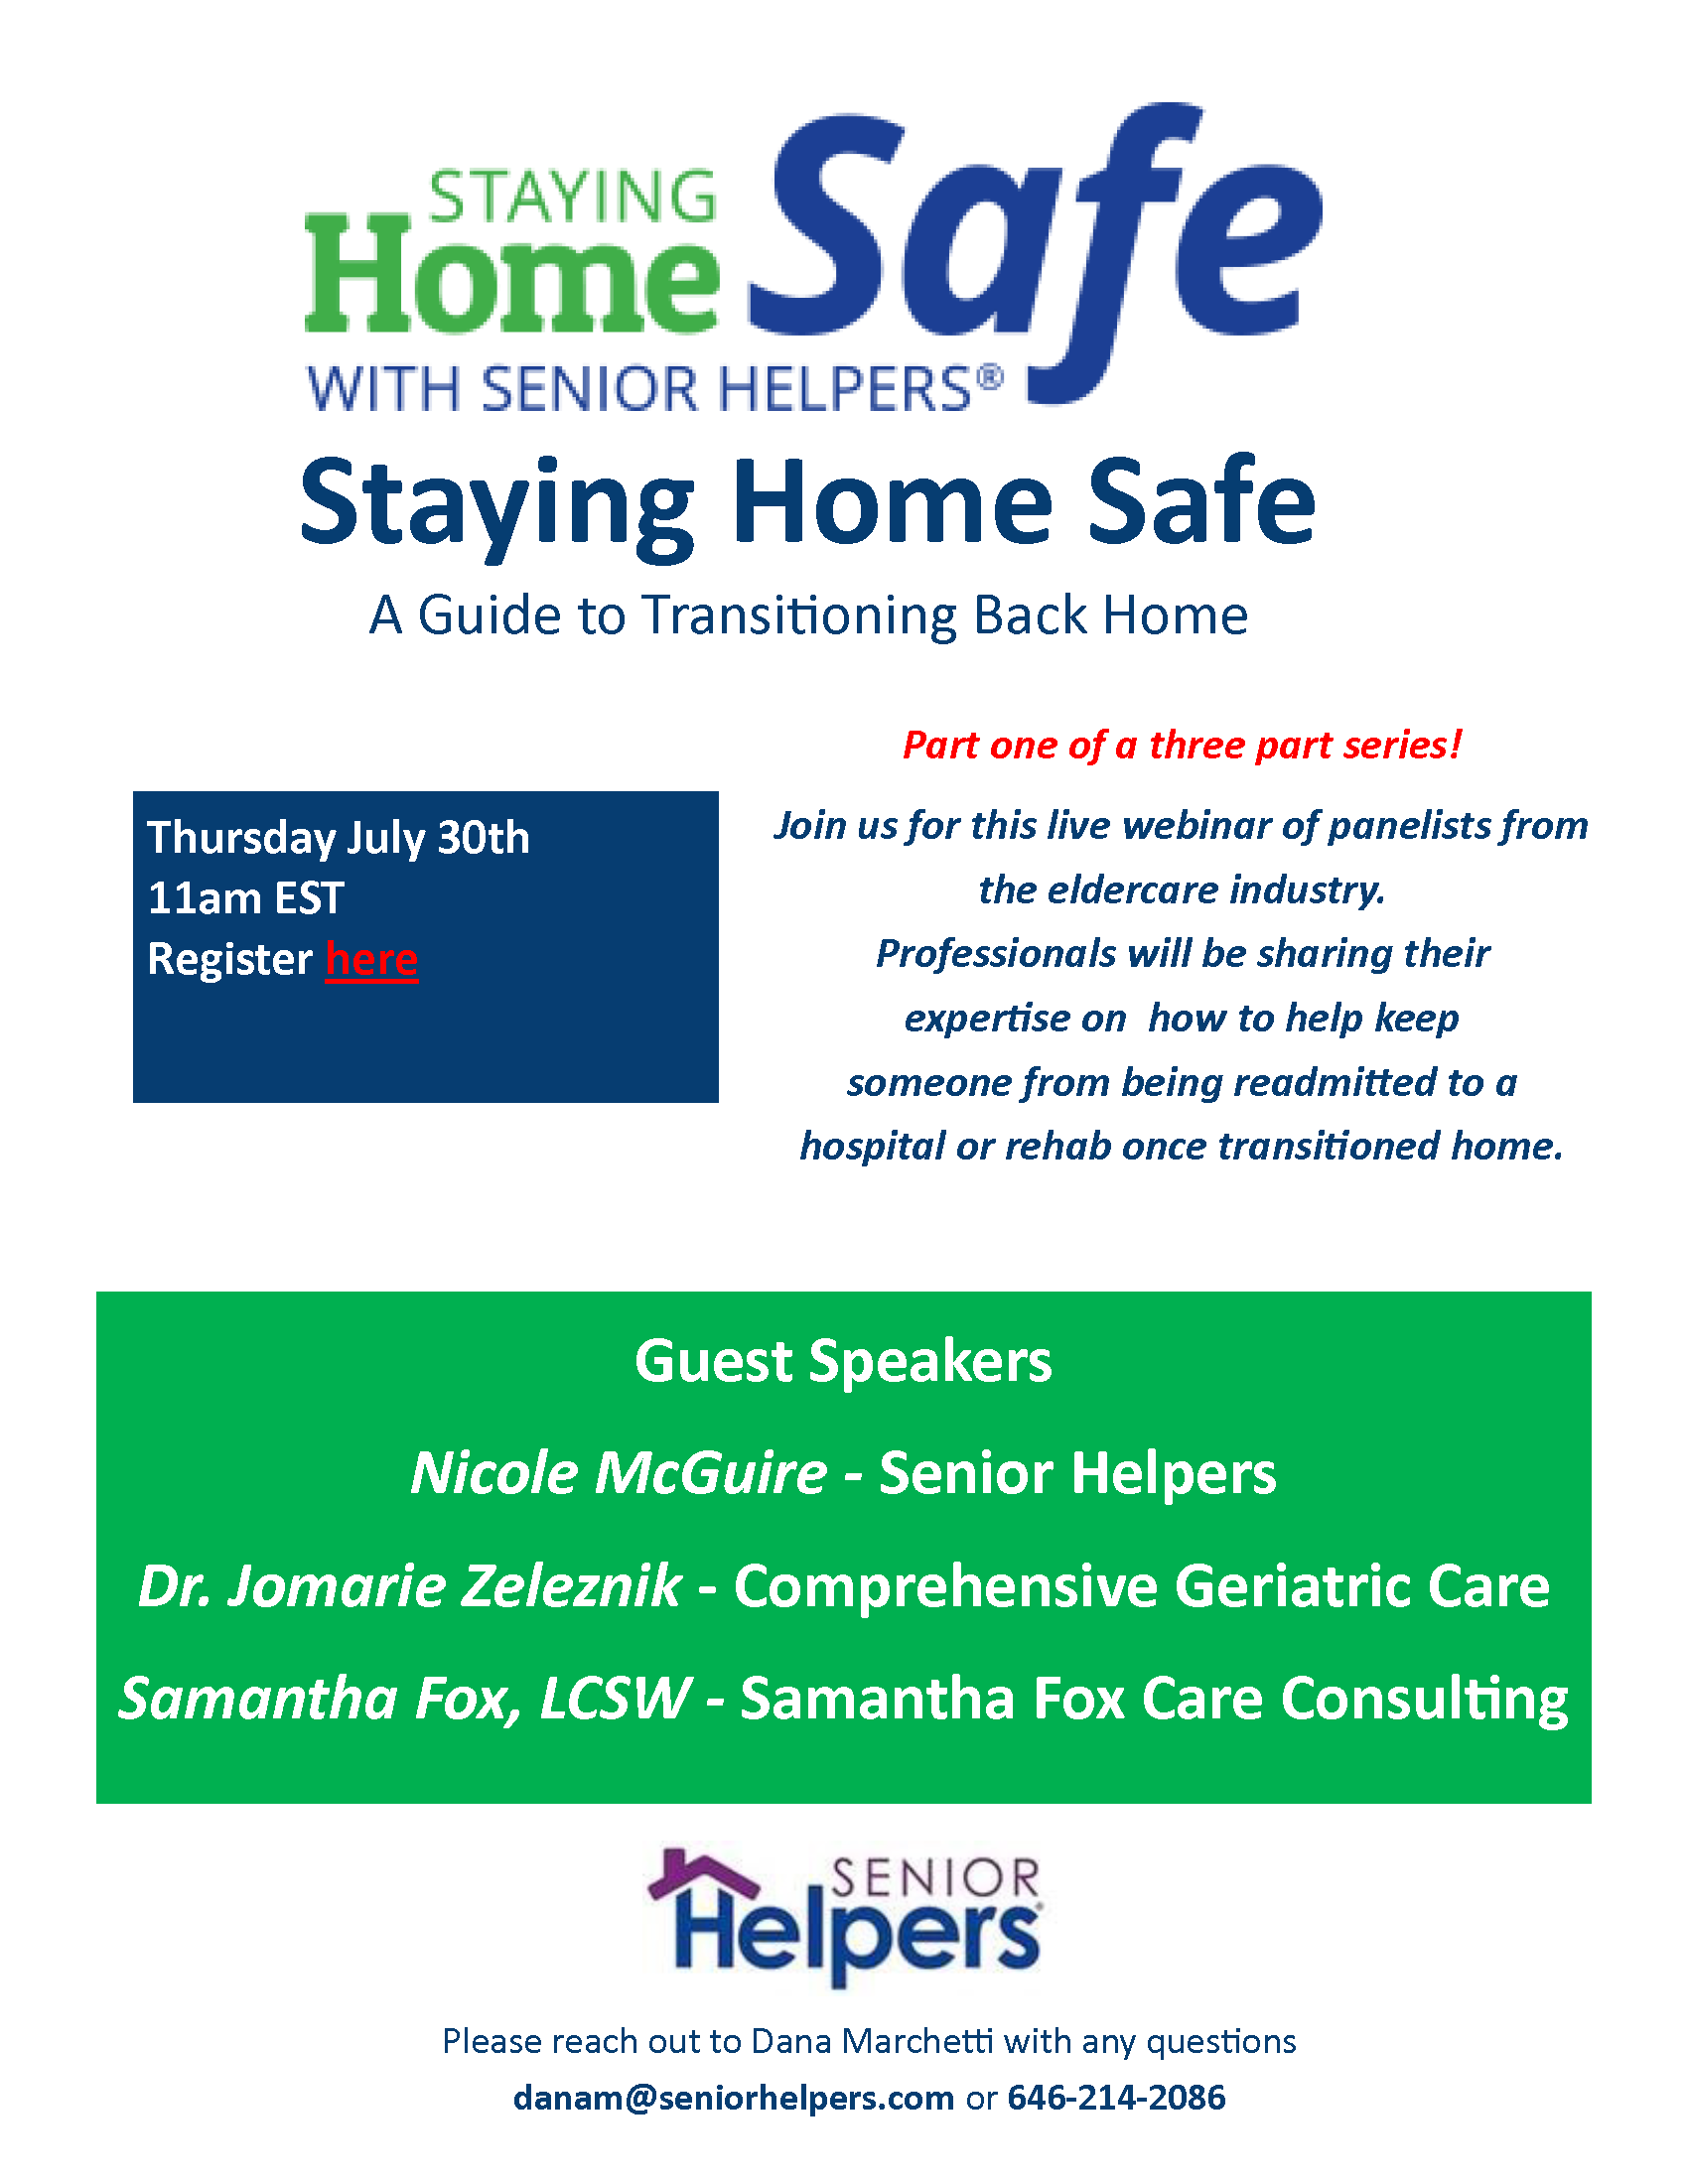 Staying Home Safe Webinar for Senior Helpers New York City